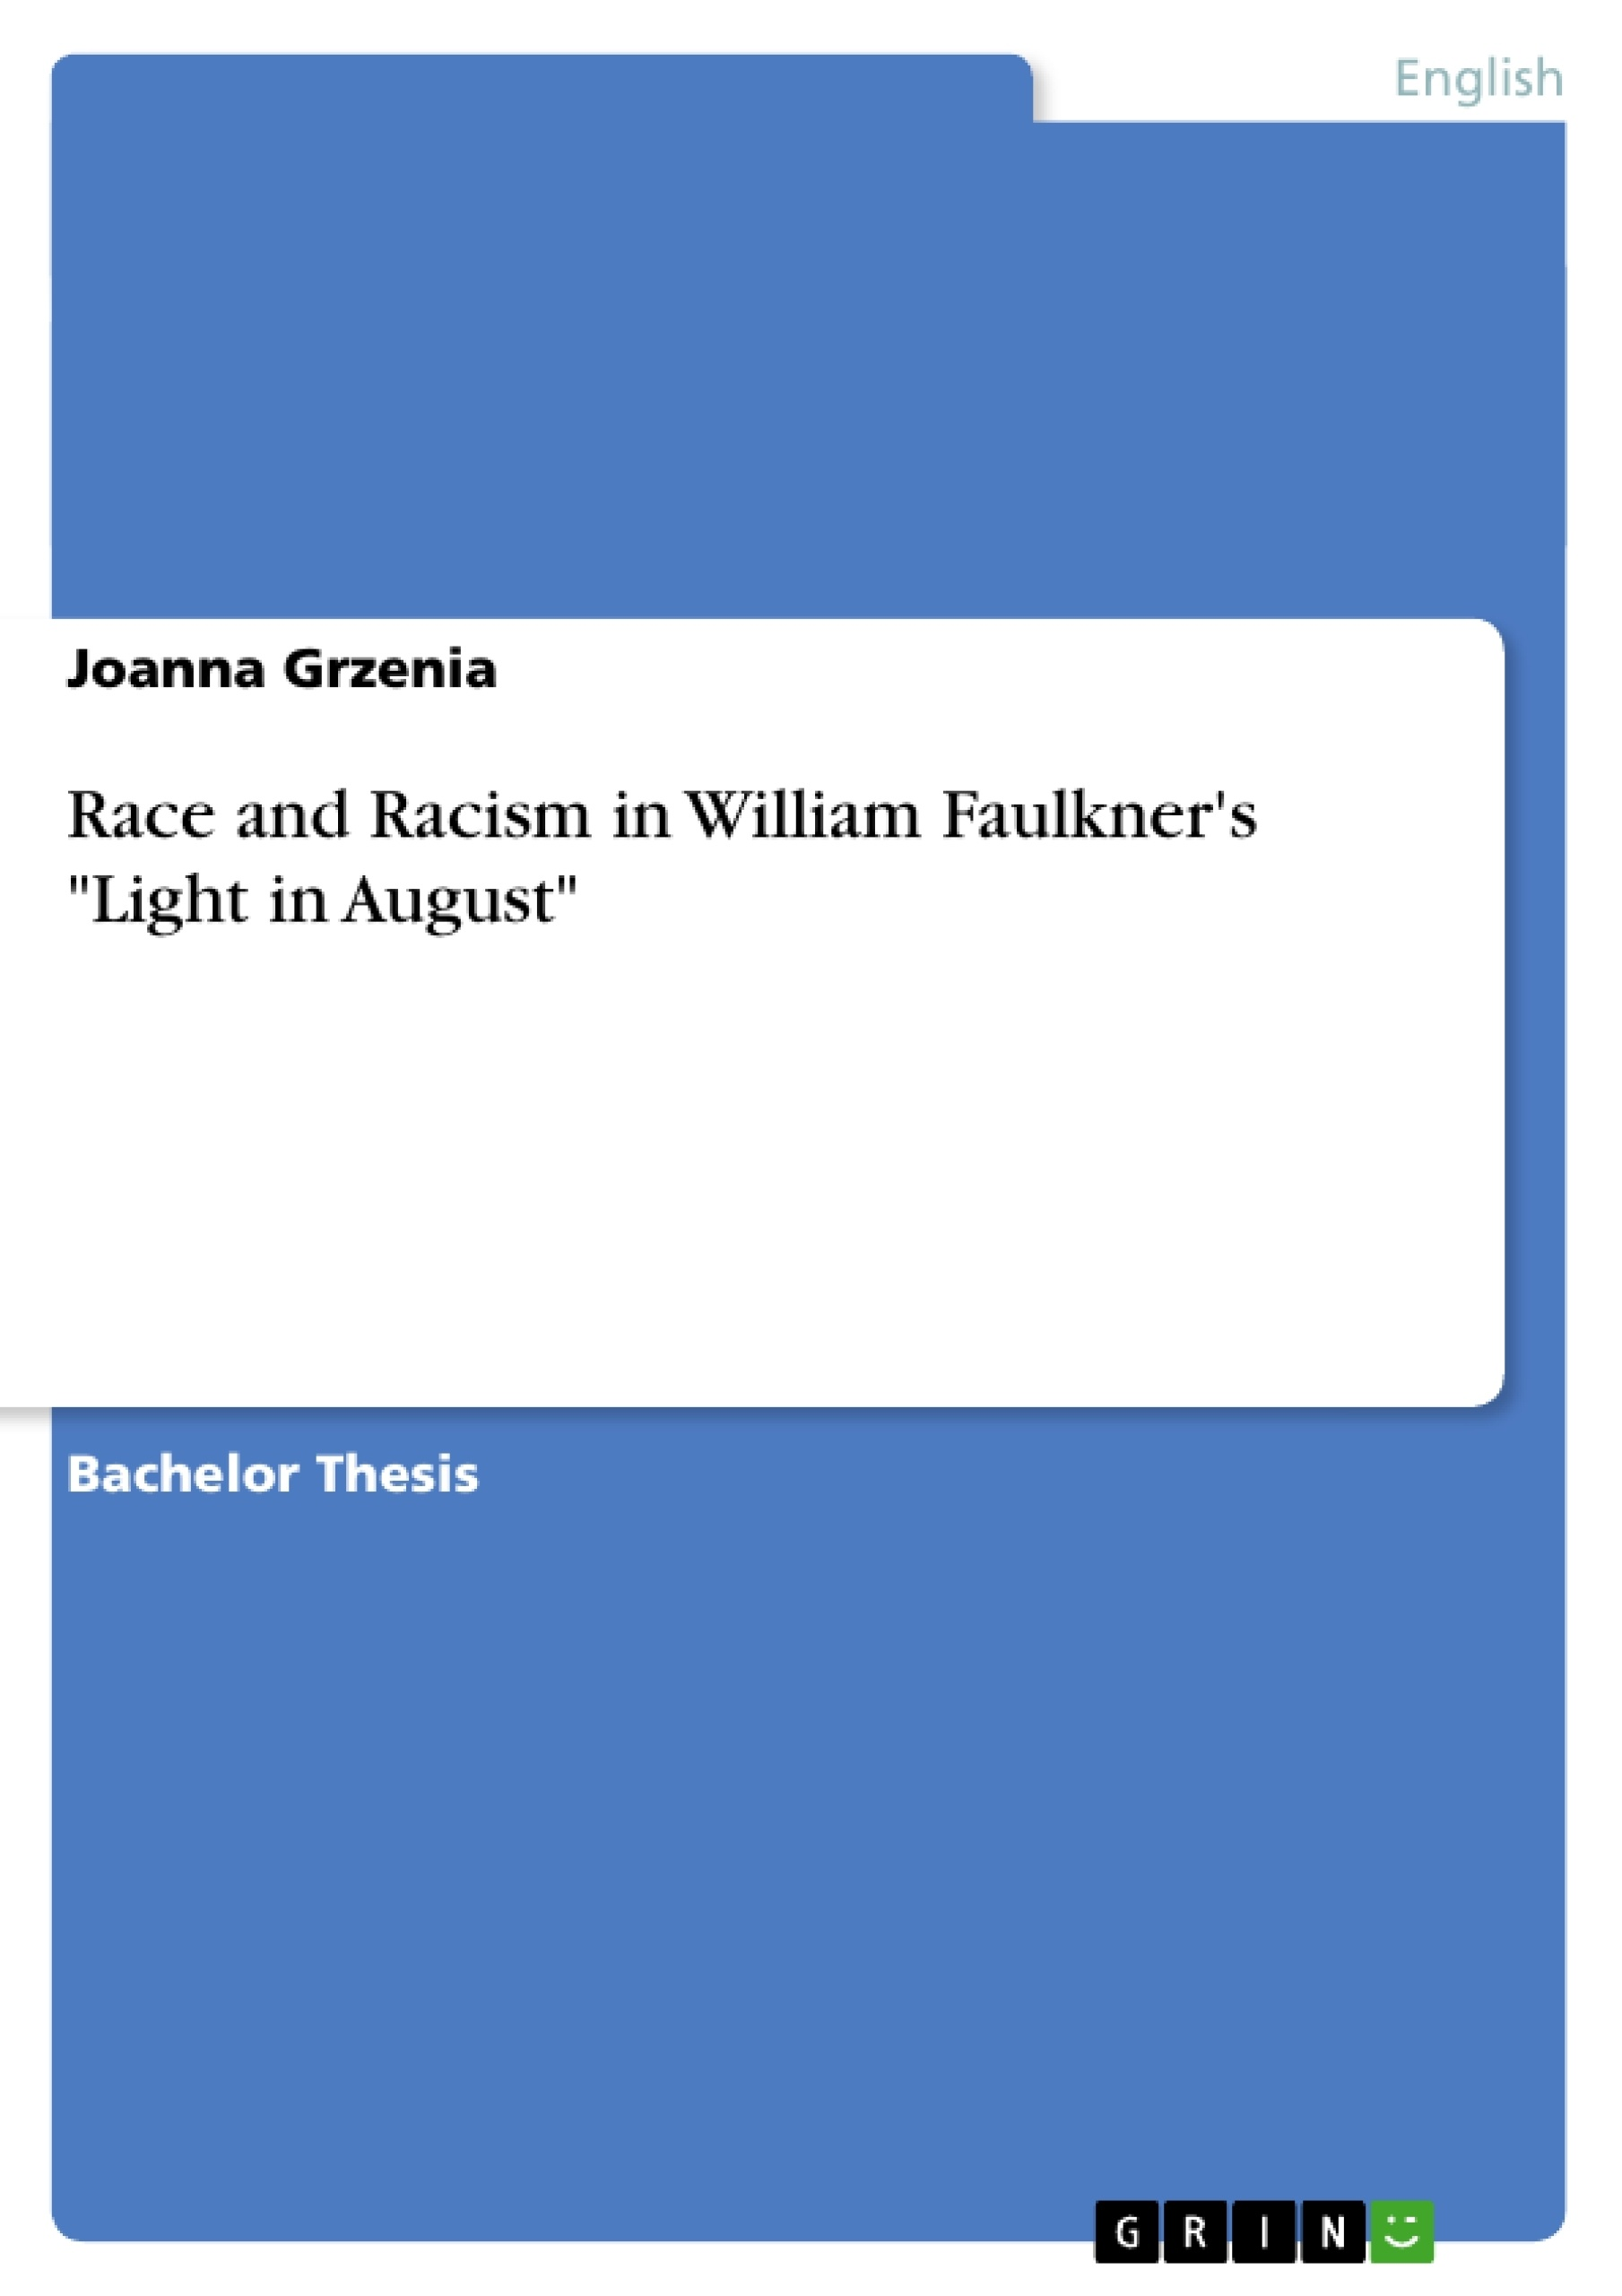 """Title: Race and Racism in William Faulkner's """"Light in August"""""""